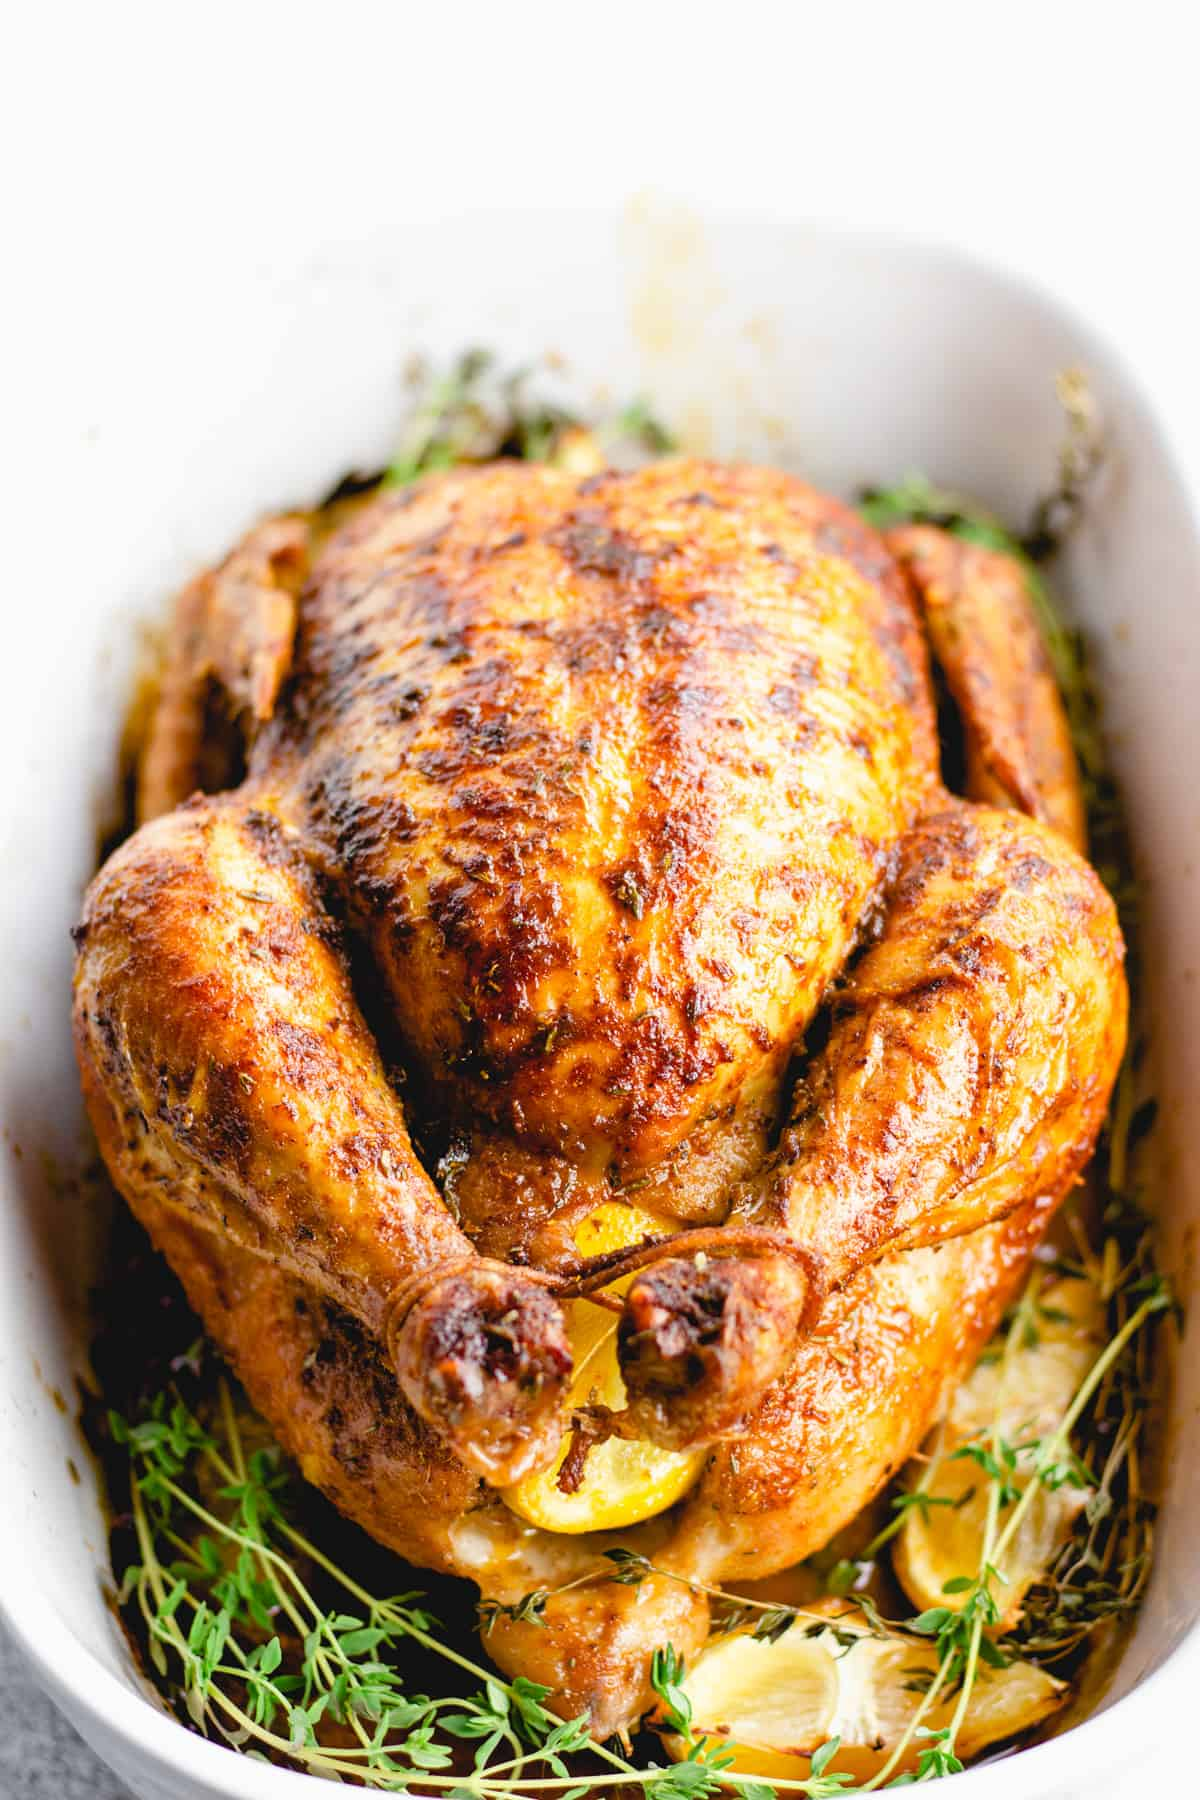 A cooked whole roasted chicken placed in a white baking pan with thyme and lemon wedges.